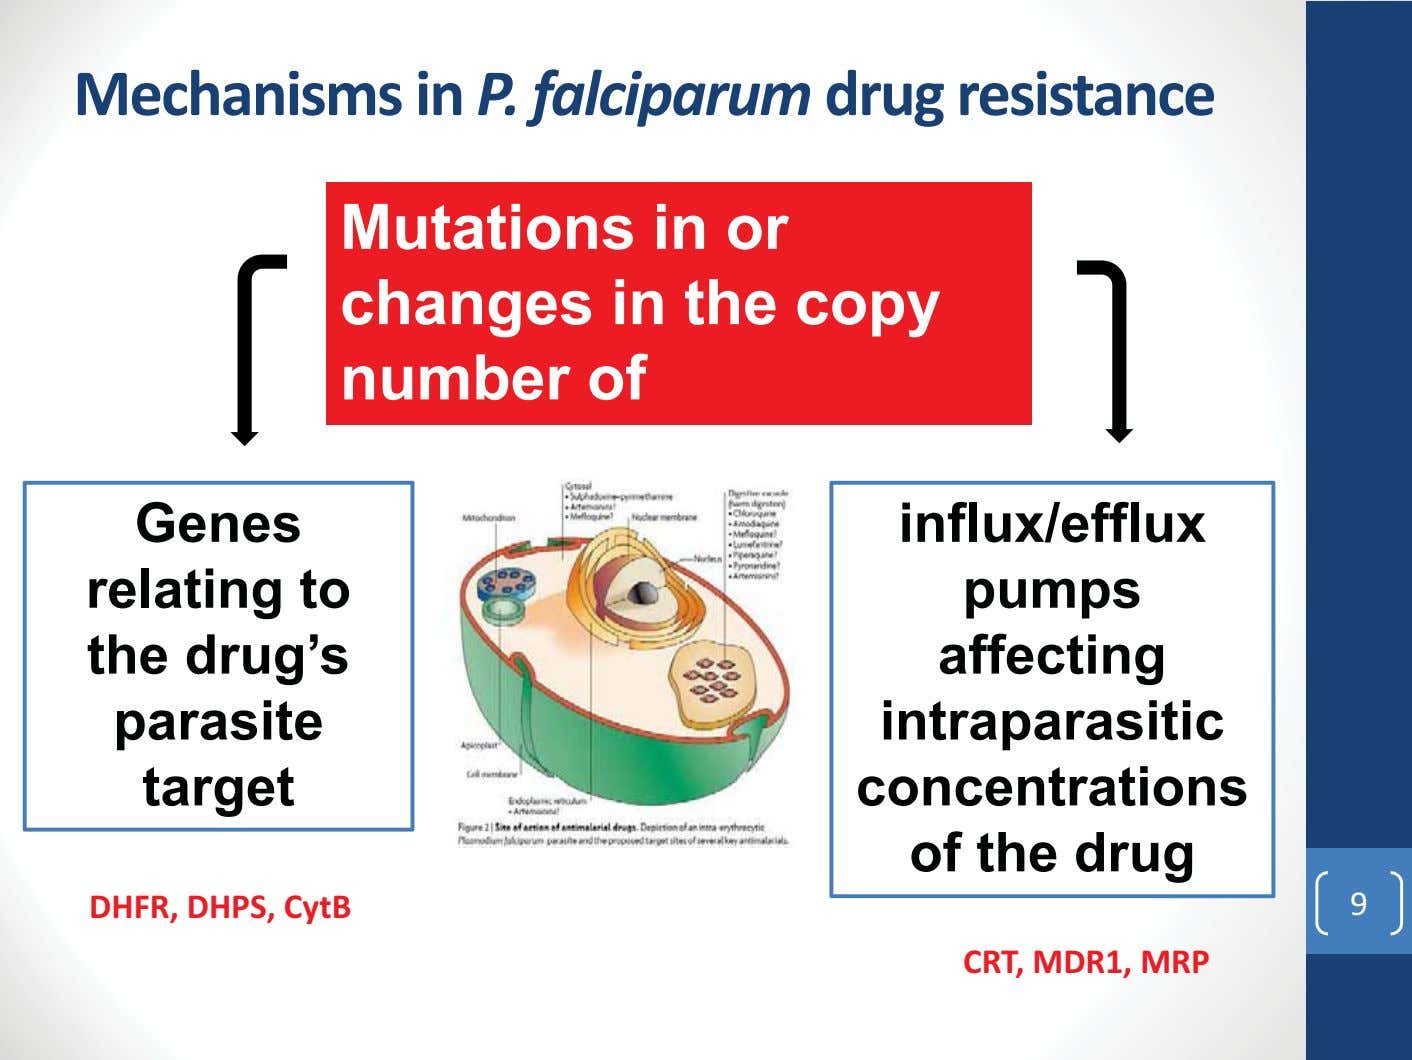 Mechanisms in P. falciparum drug resistance Mutations in or changes in the copy number of